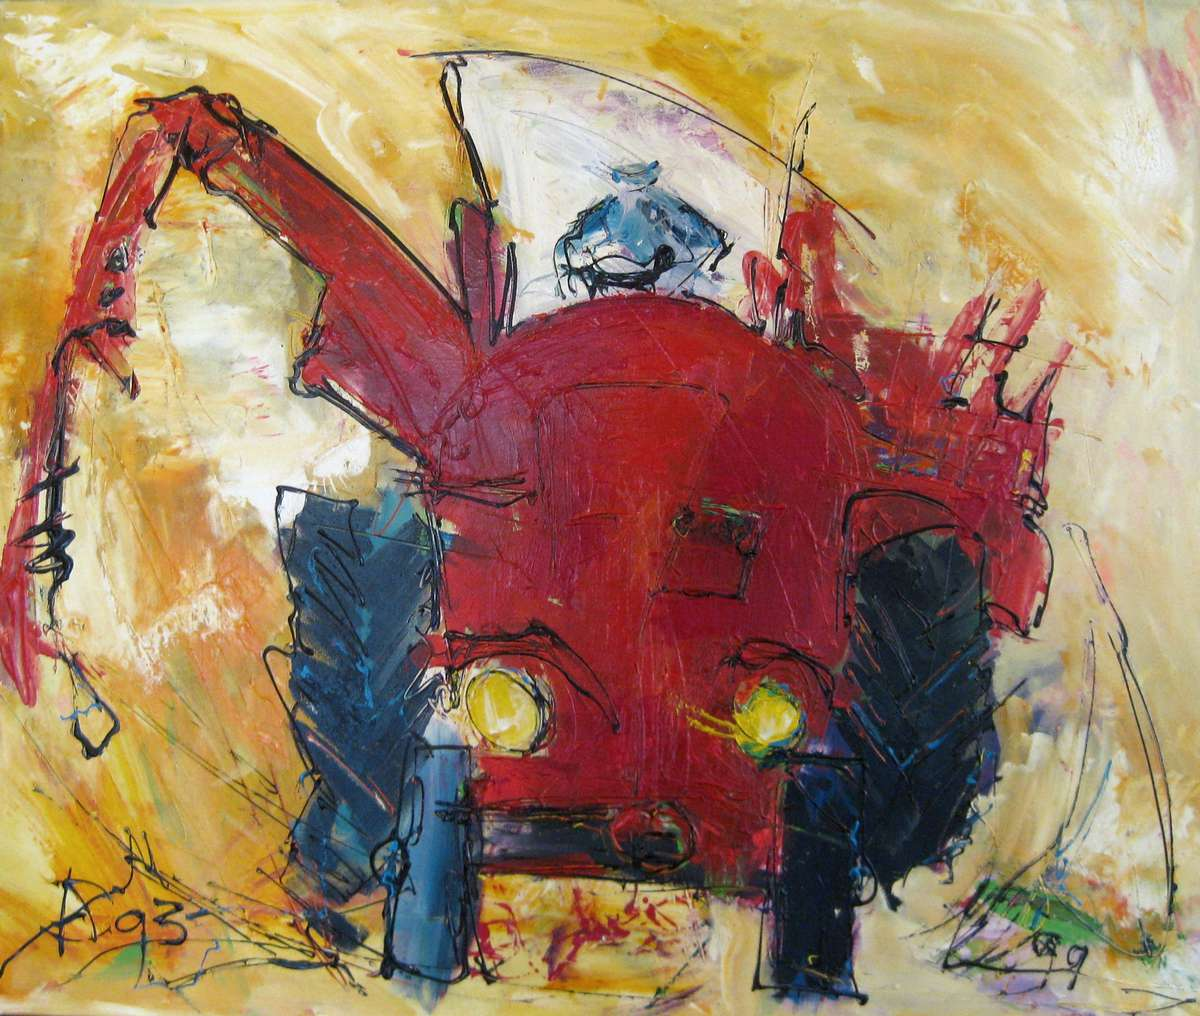 Arno Overdevest - Tractor rood - Acryl - 120x100